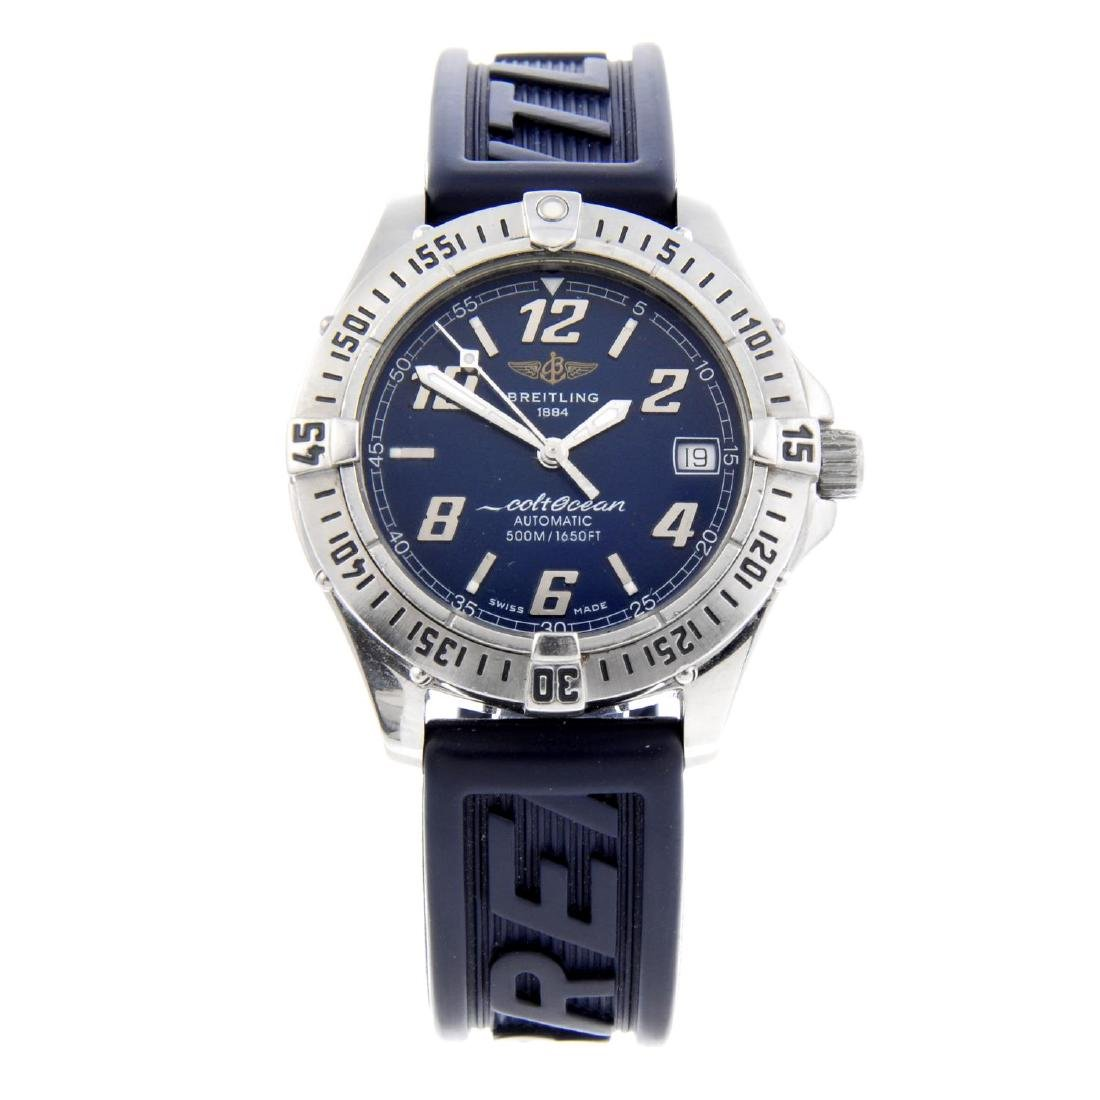 BREITLING - a gentleman's ColtOcean wrist watch.